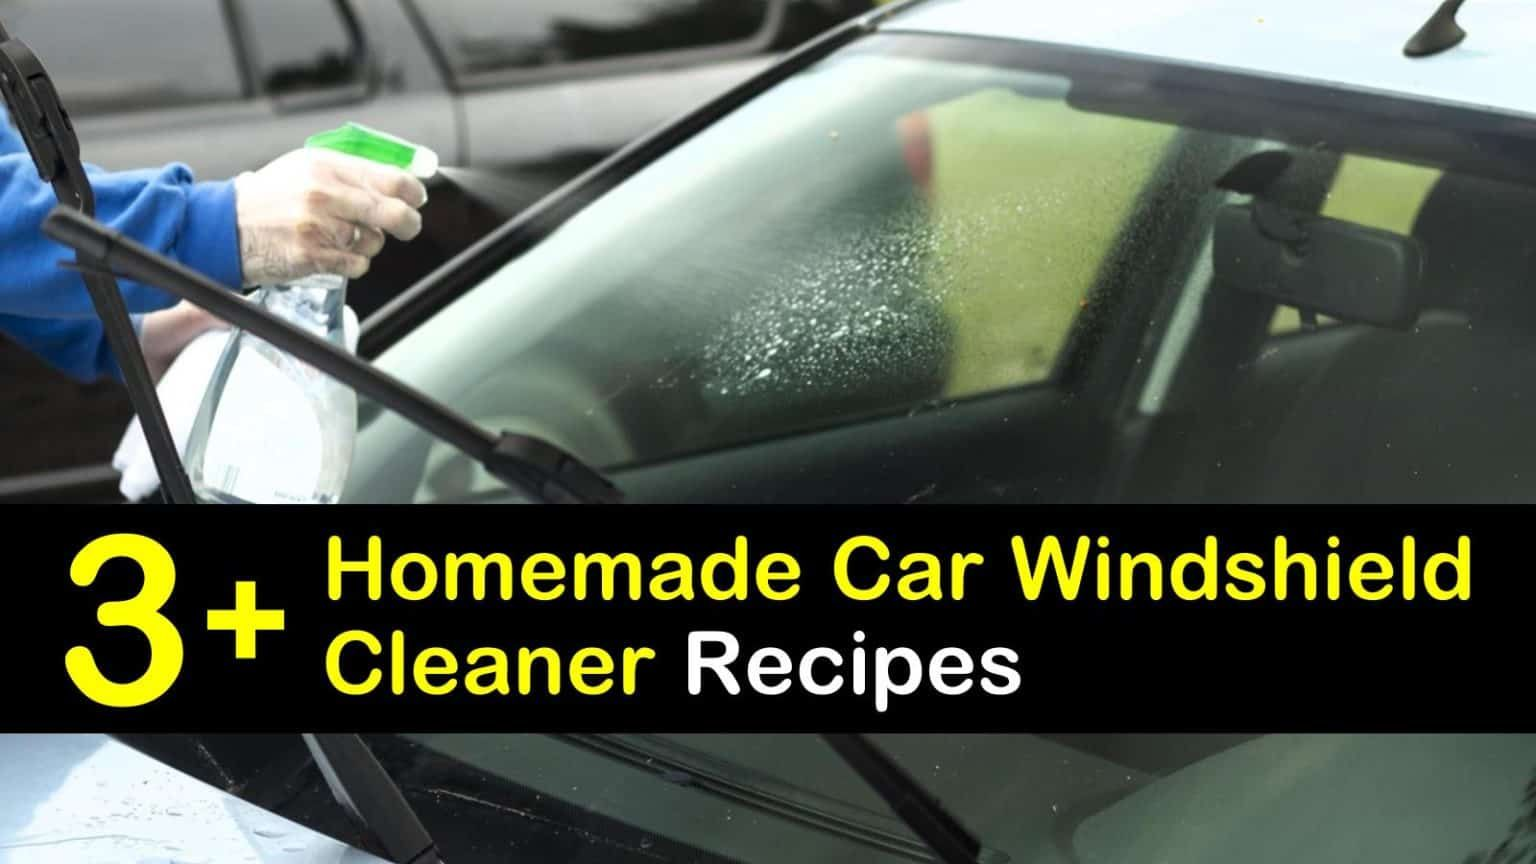 Pin on Windshield cleaner